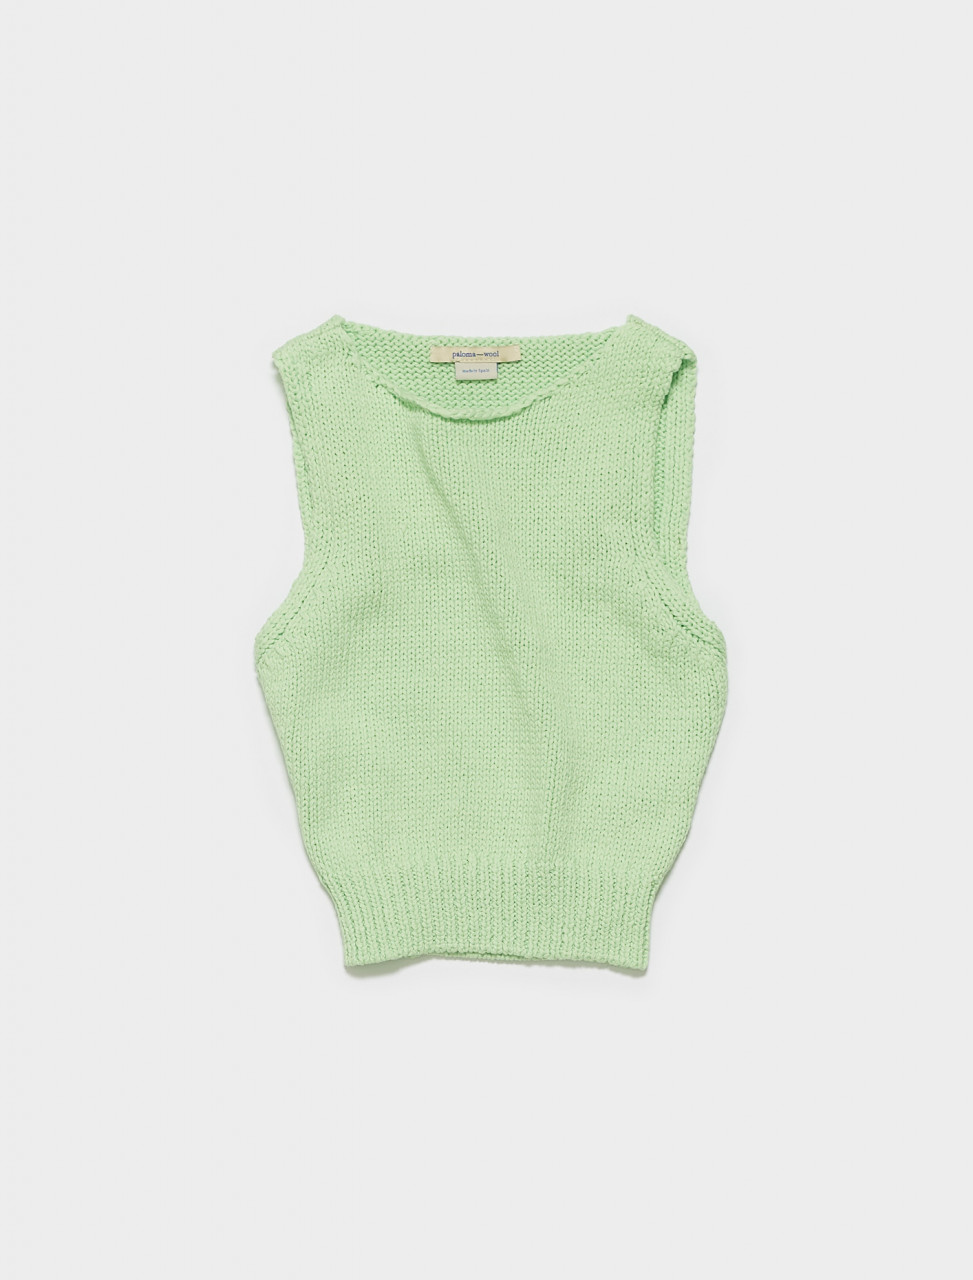 PKM008-504 PALOMA WOOL JIGGLYPUFF TANK TOP IN GREEN FLUO